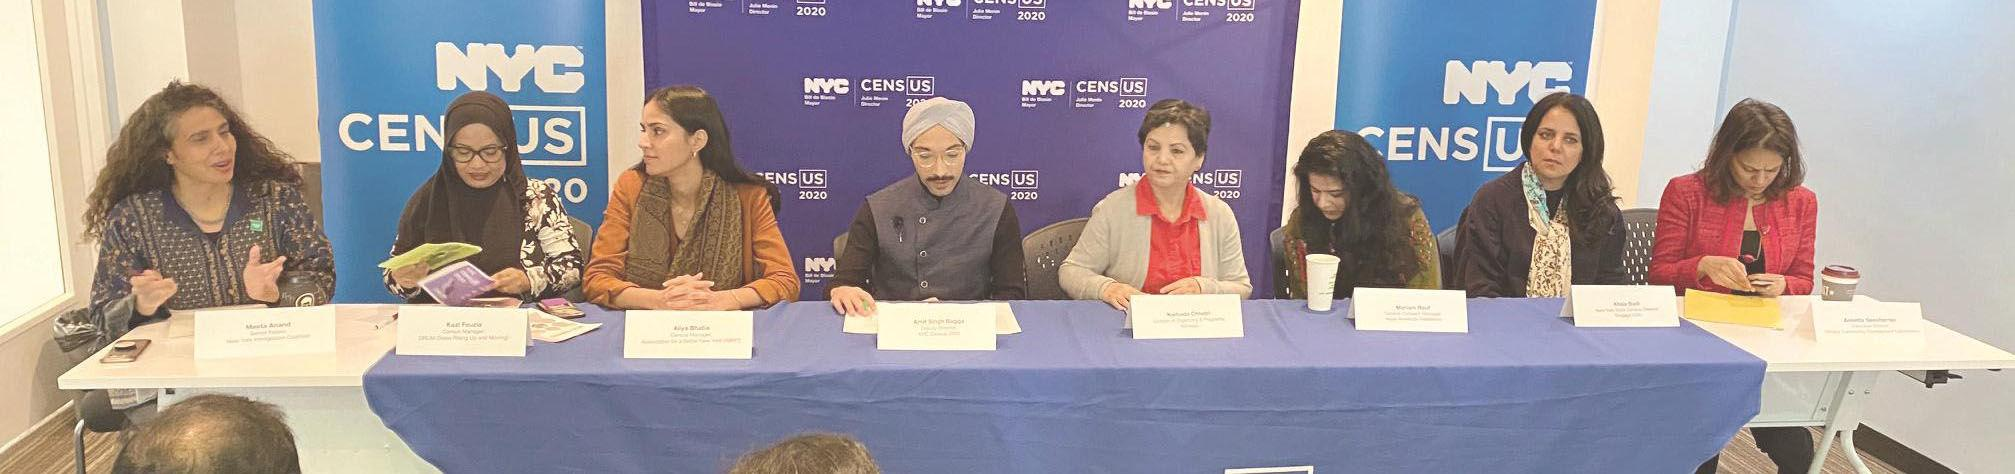 New Yorkers Urged to Fill Out Census 2020